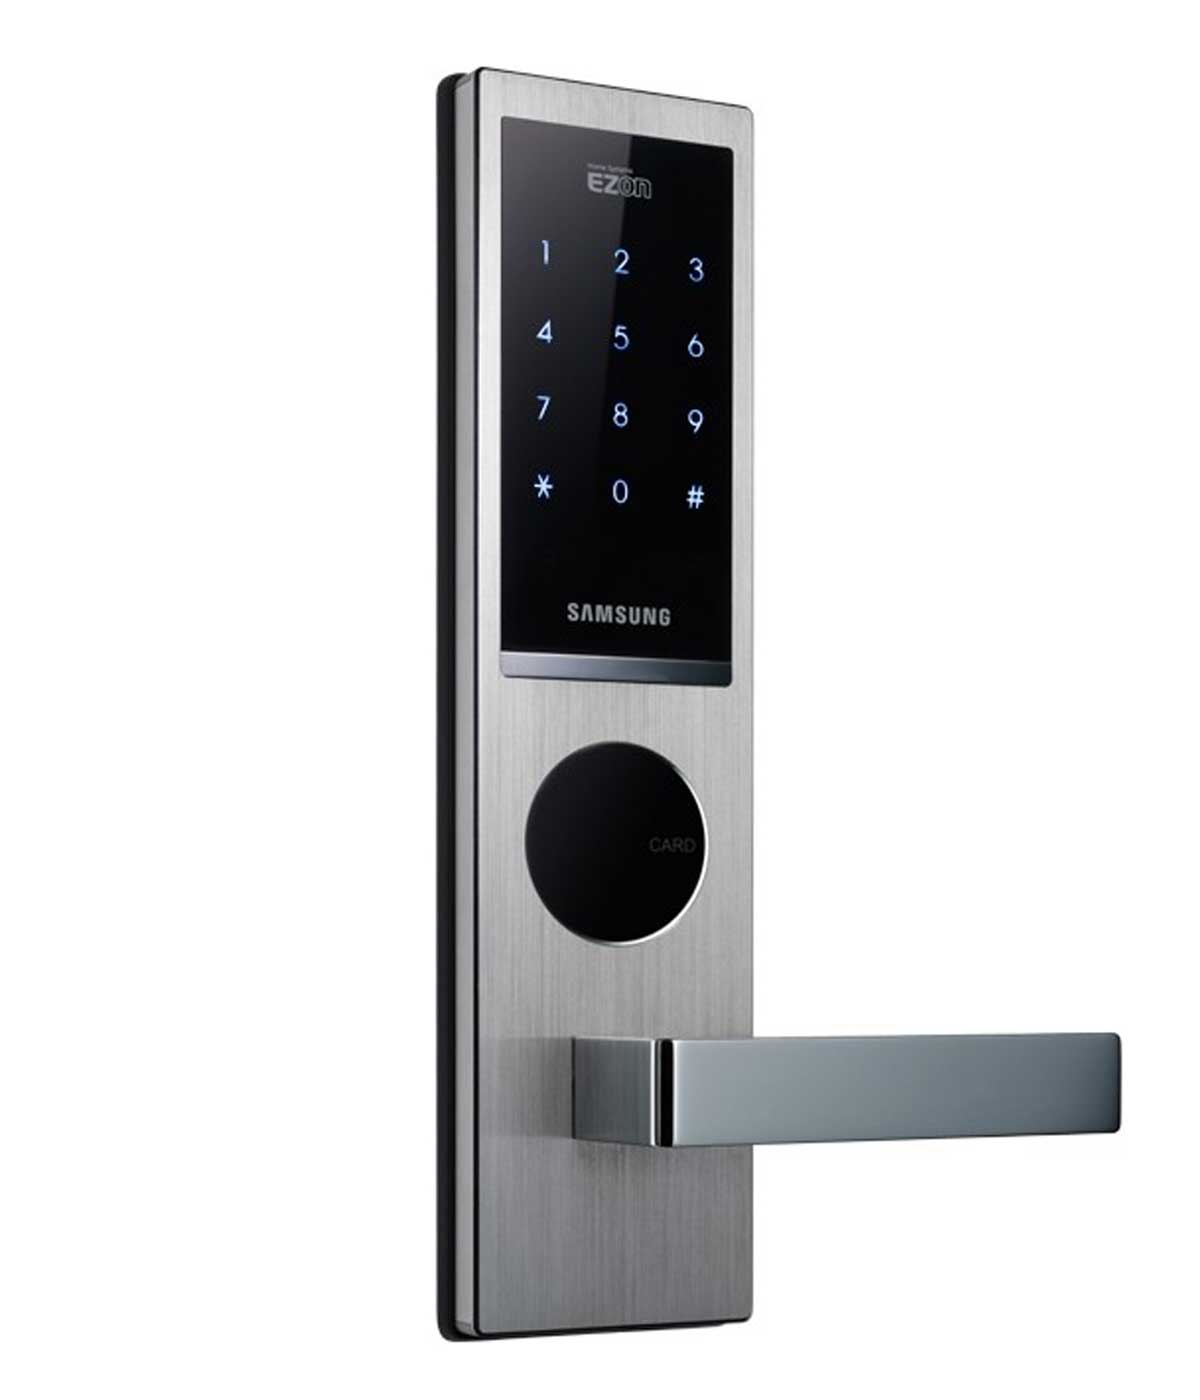 digital door lock system security solutions samsung shs 6020 singapore